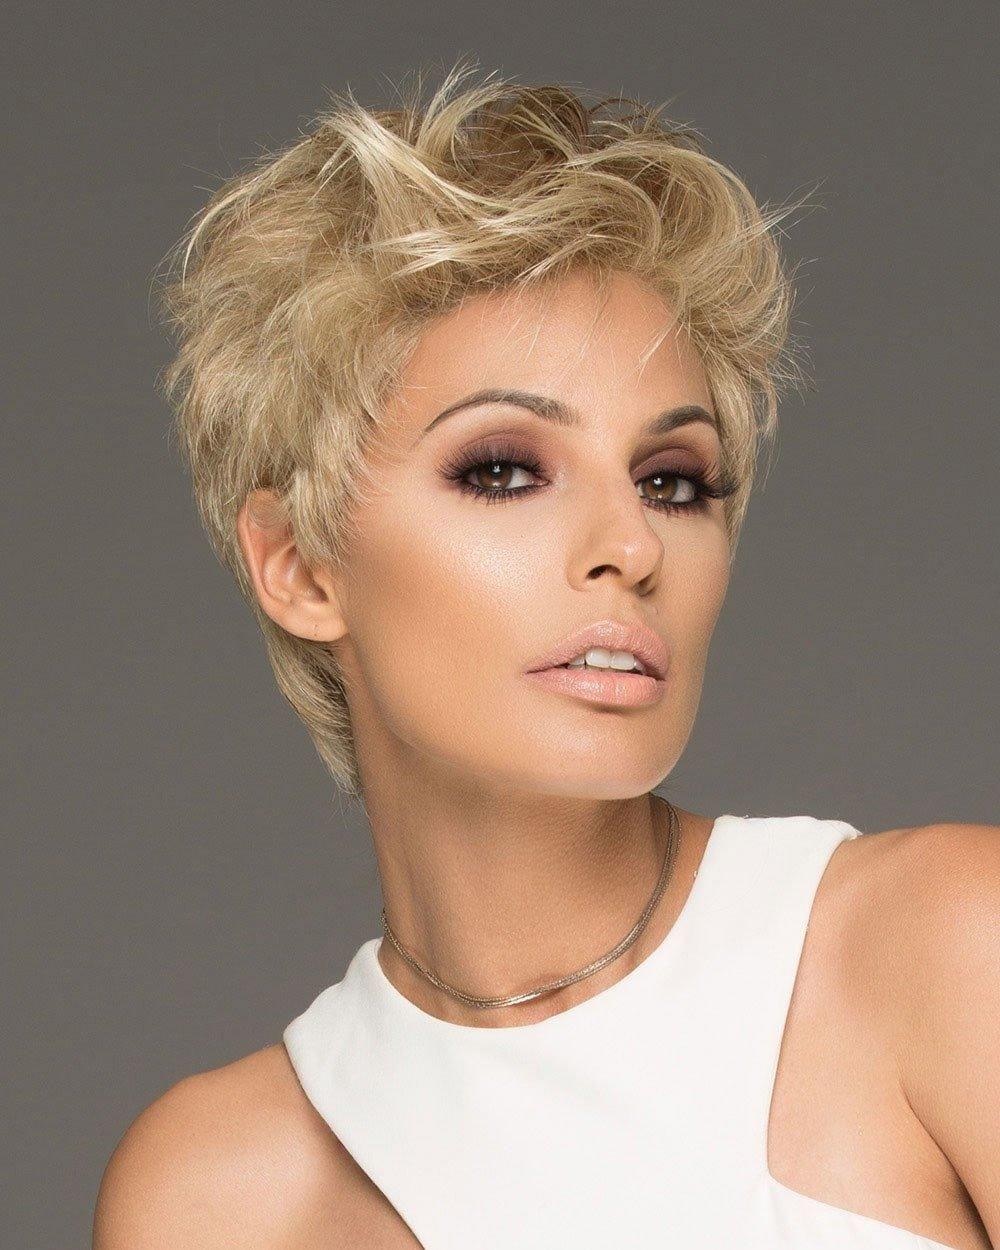 New 25 Ultra Short Hairstyles Pixie Haircuts Hair Color Ideas With Pictures